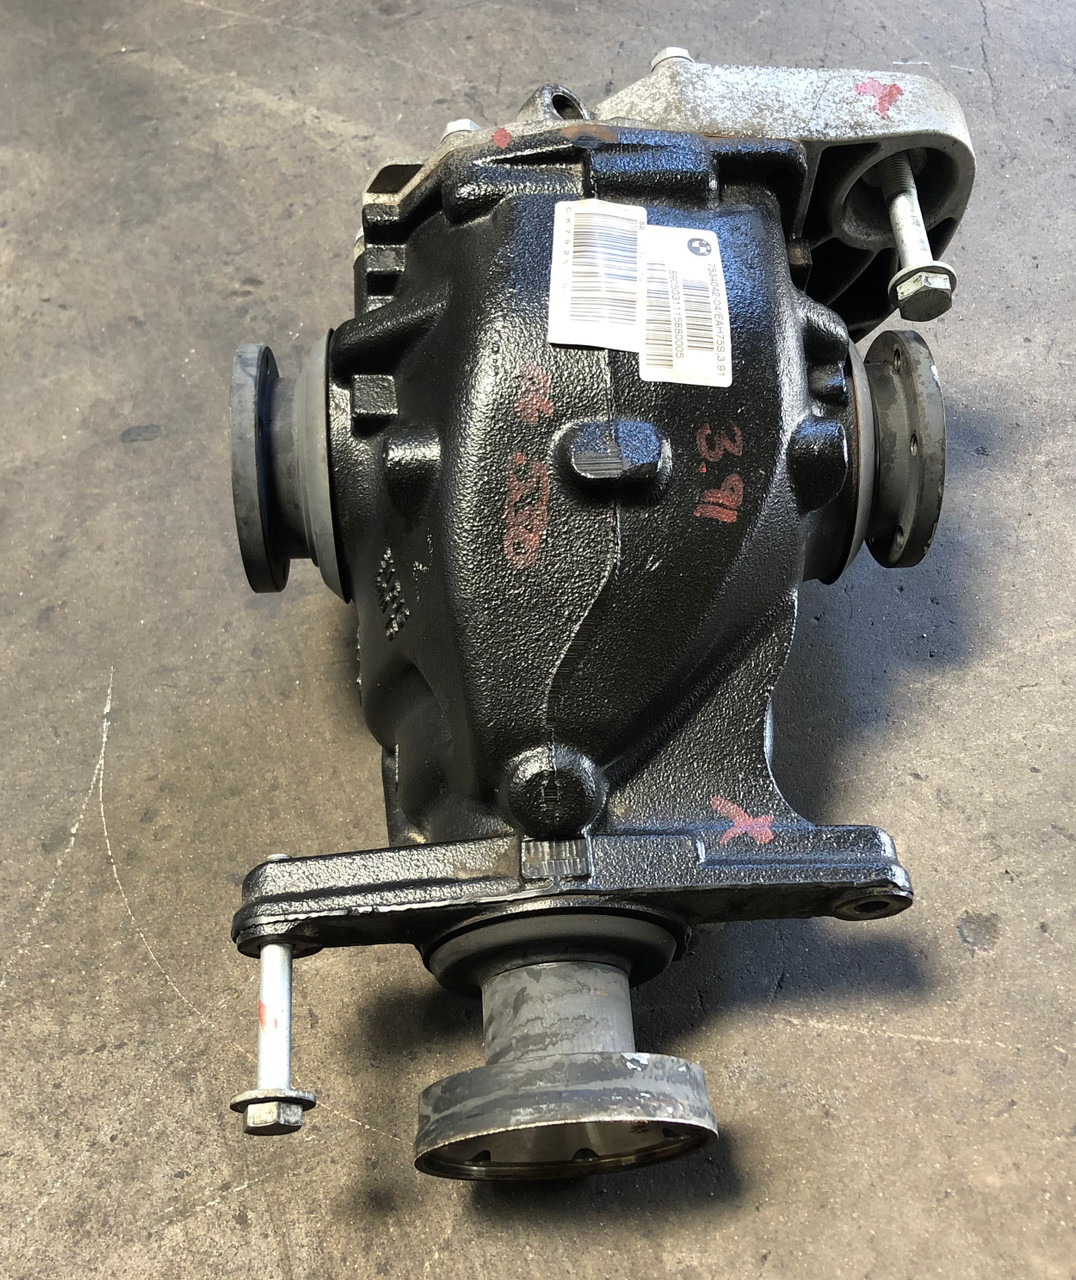 06 Bmw E60 530i 525i Automatic Rear Differential Axle Carrier 3 91 Gear 7534042 Bimmermerchant